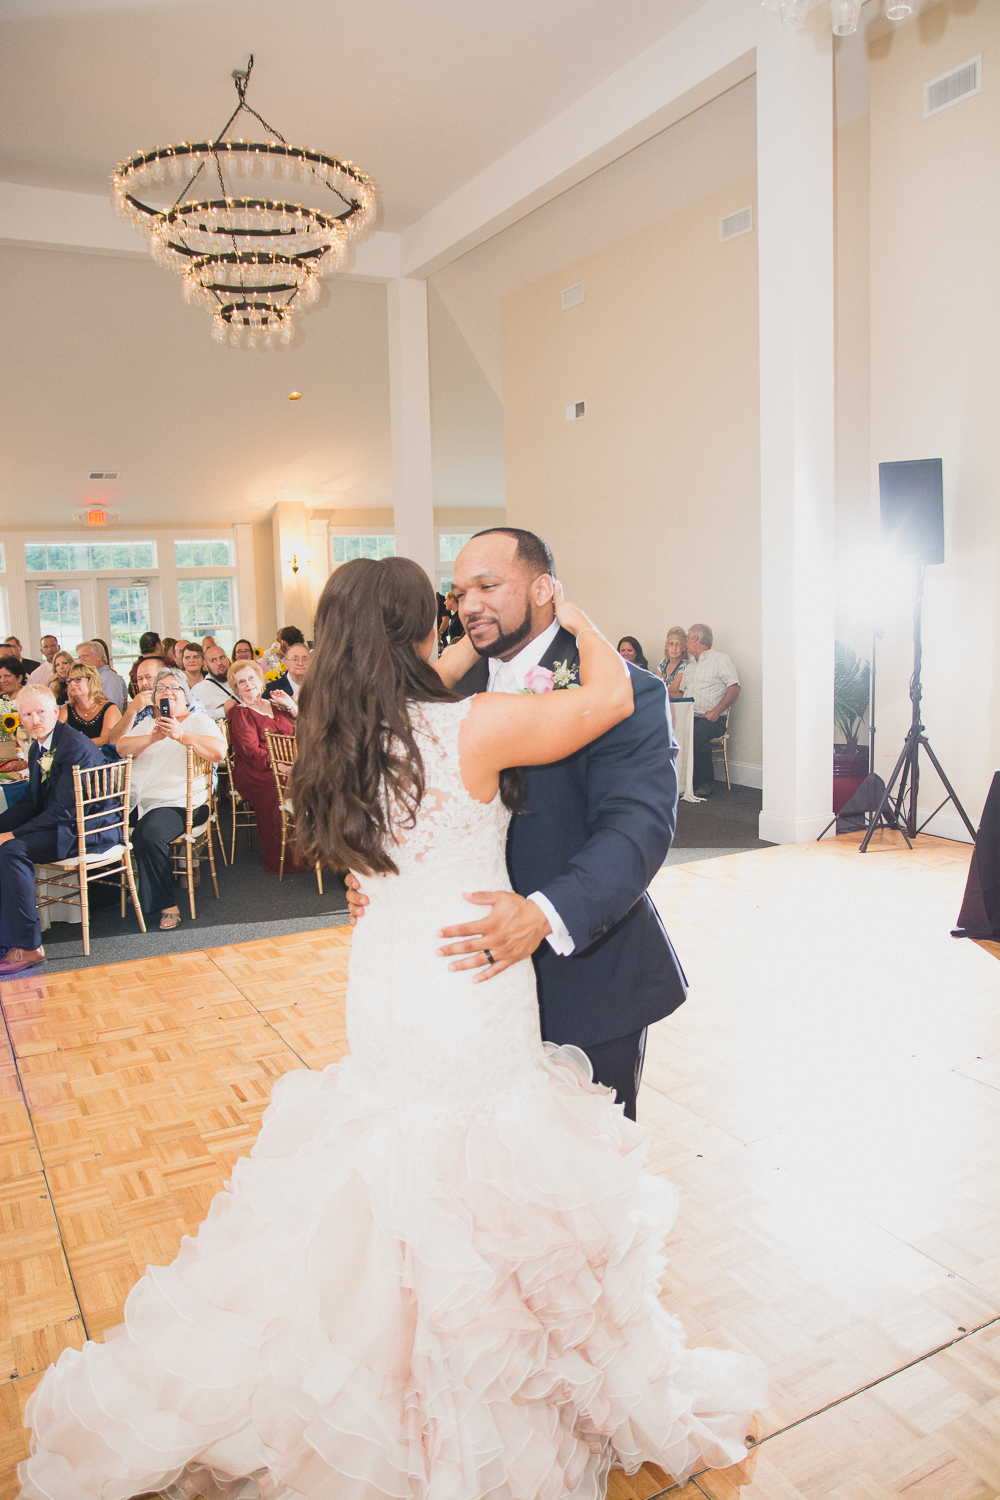 Springfield Manor Winery & Distillery Wedding Bride and Groom First Dance Photo